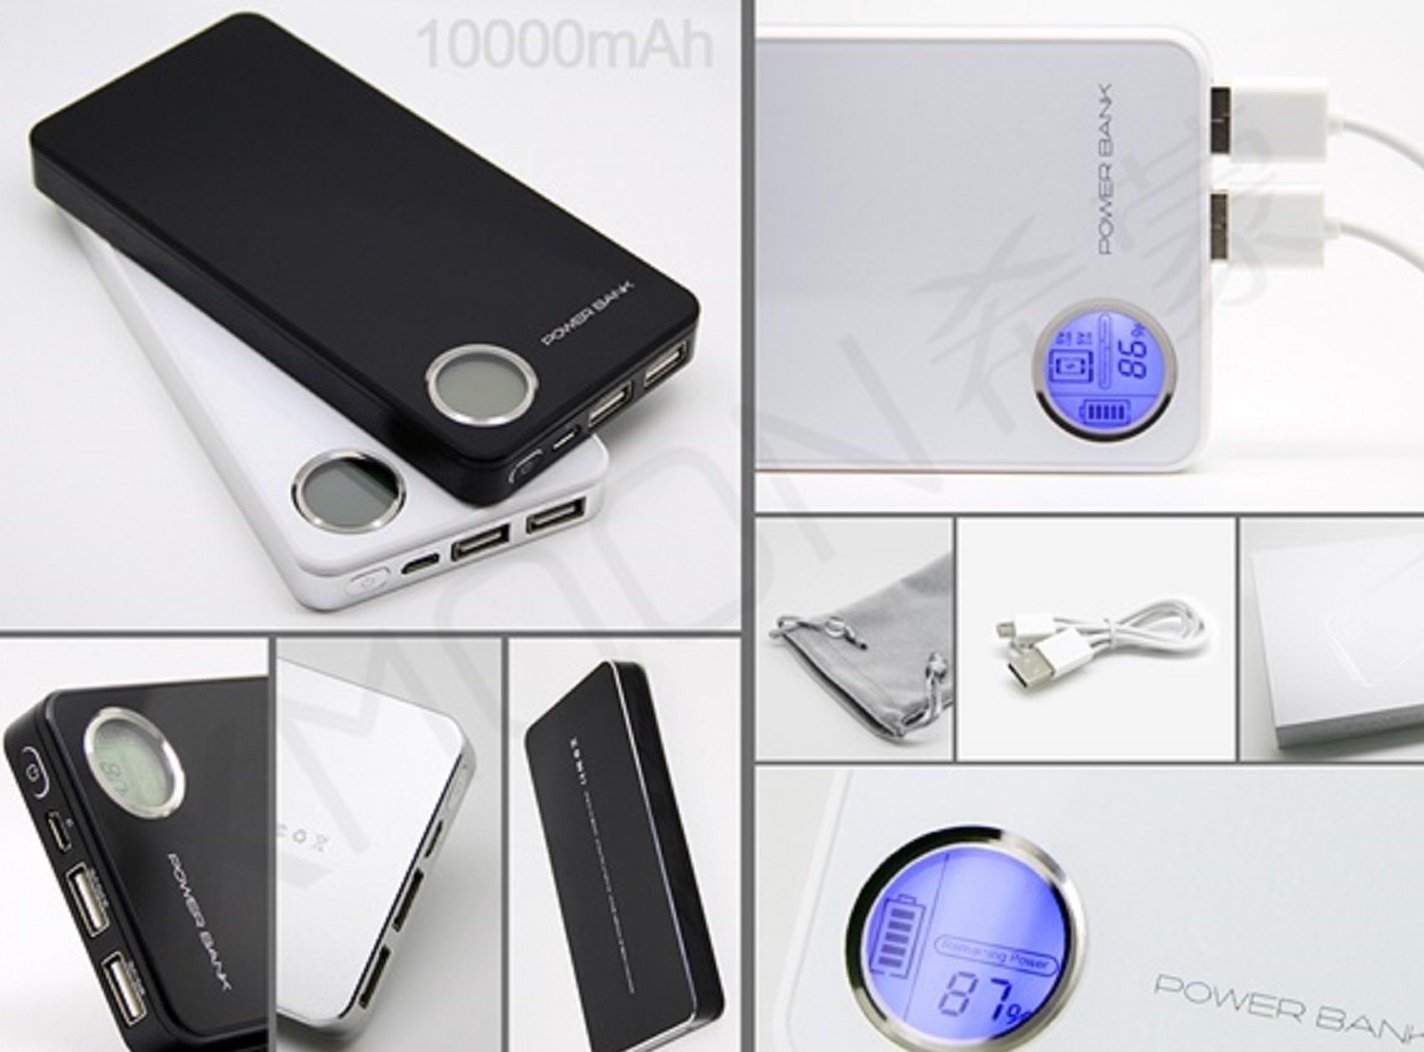 PB 325 Power Bank with Digital Display - 10000mAh